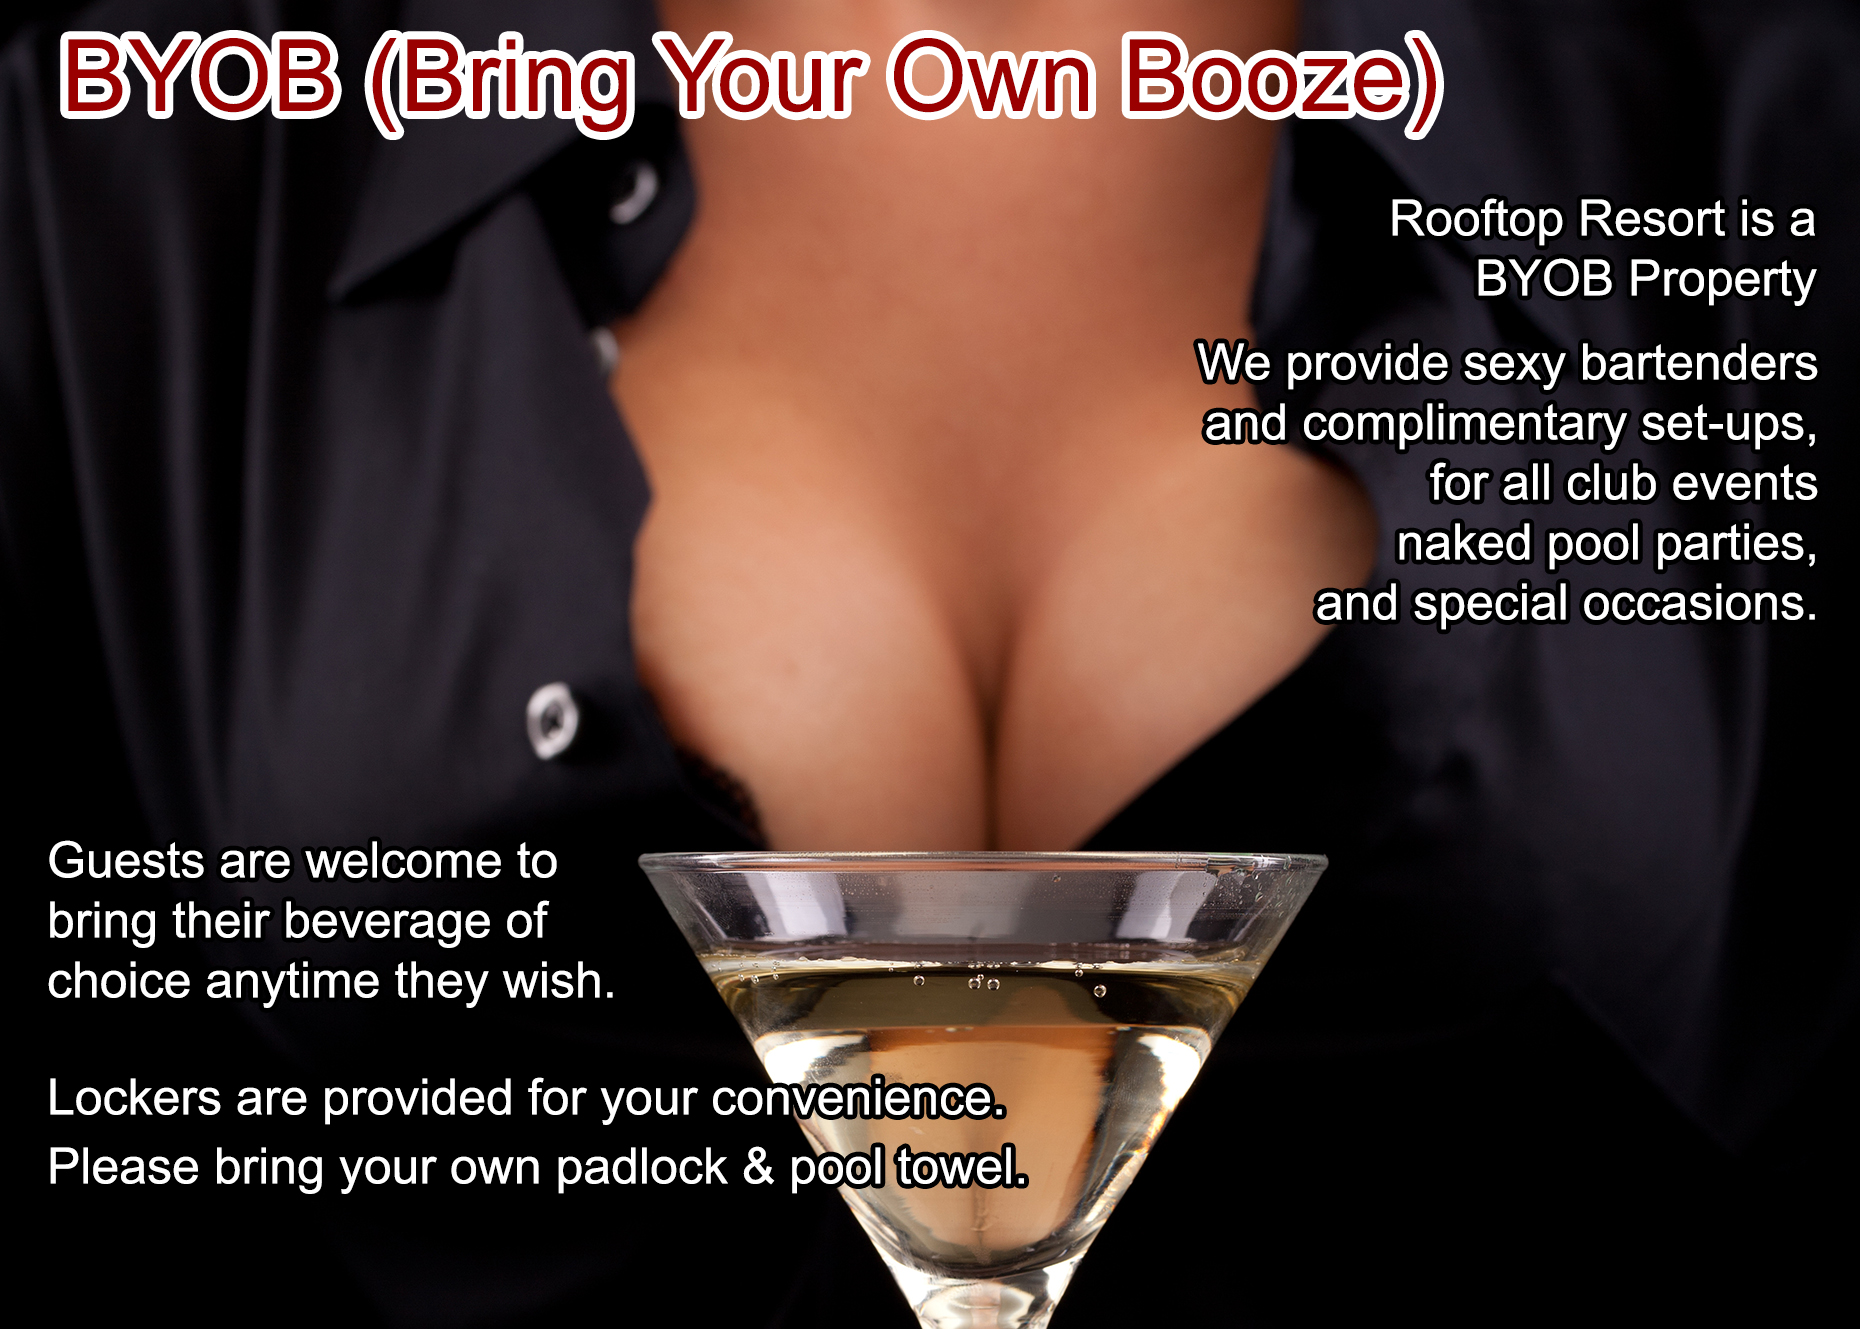 Bring Your Own Booze